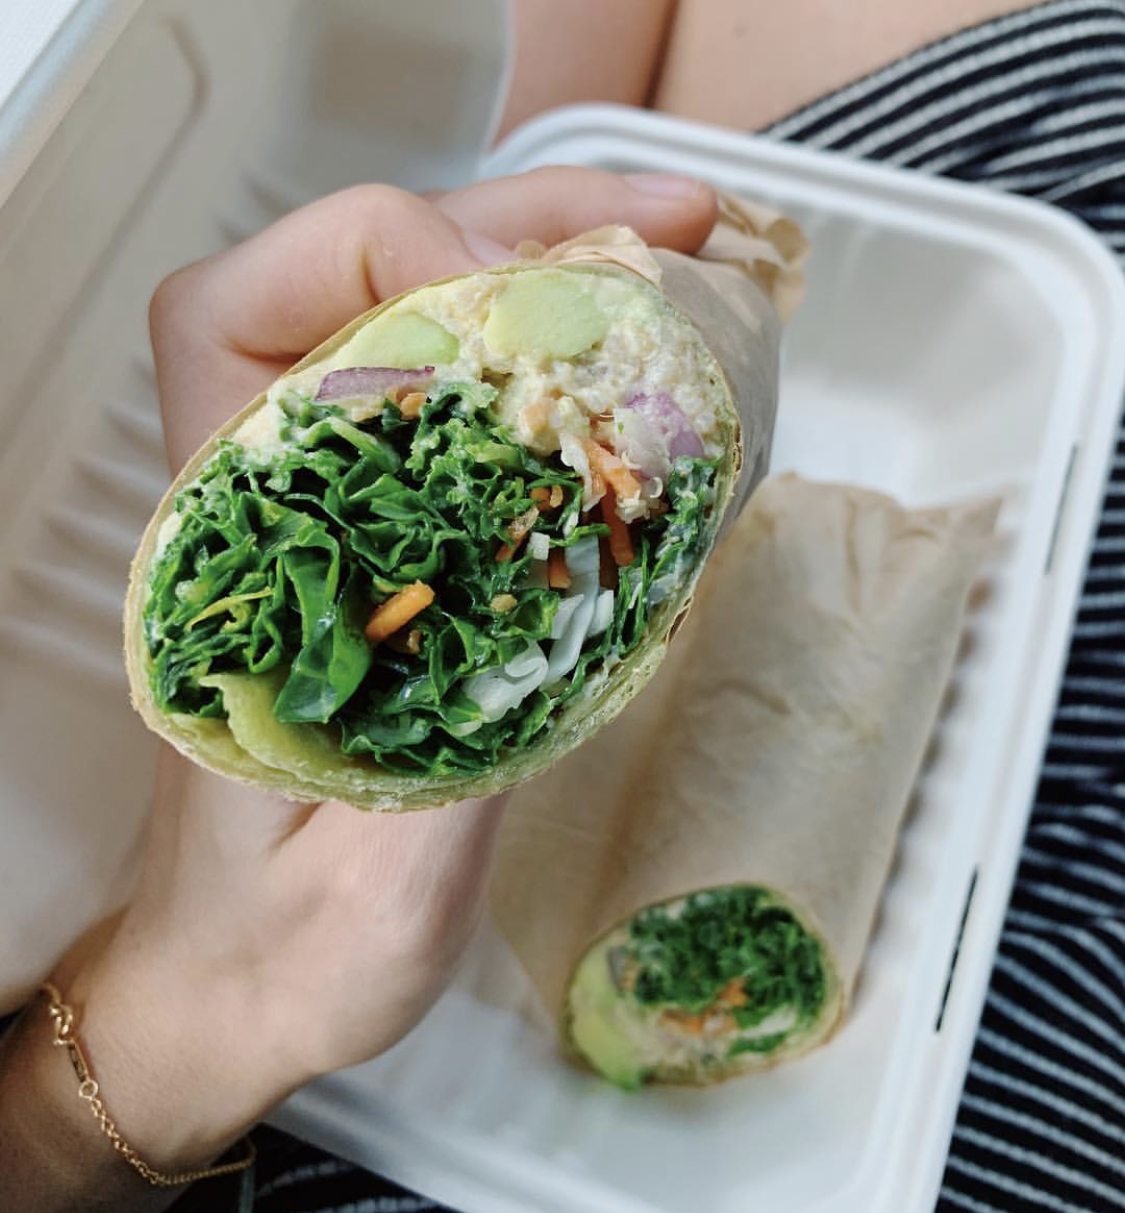 Tuna Wrap - Packed with all the fresh goods, perfect for lunch!